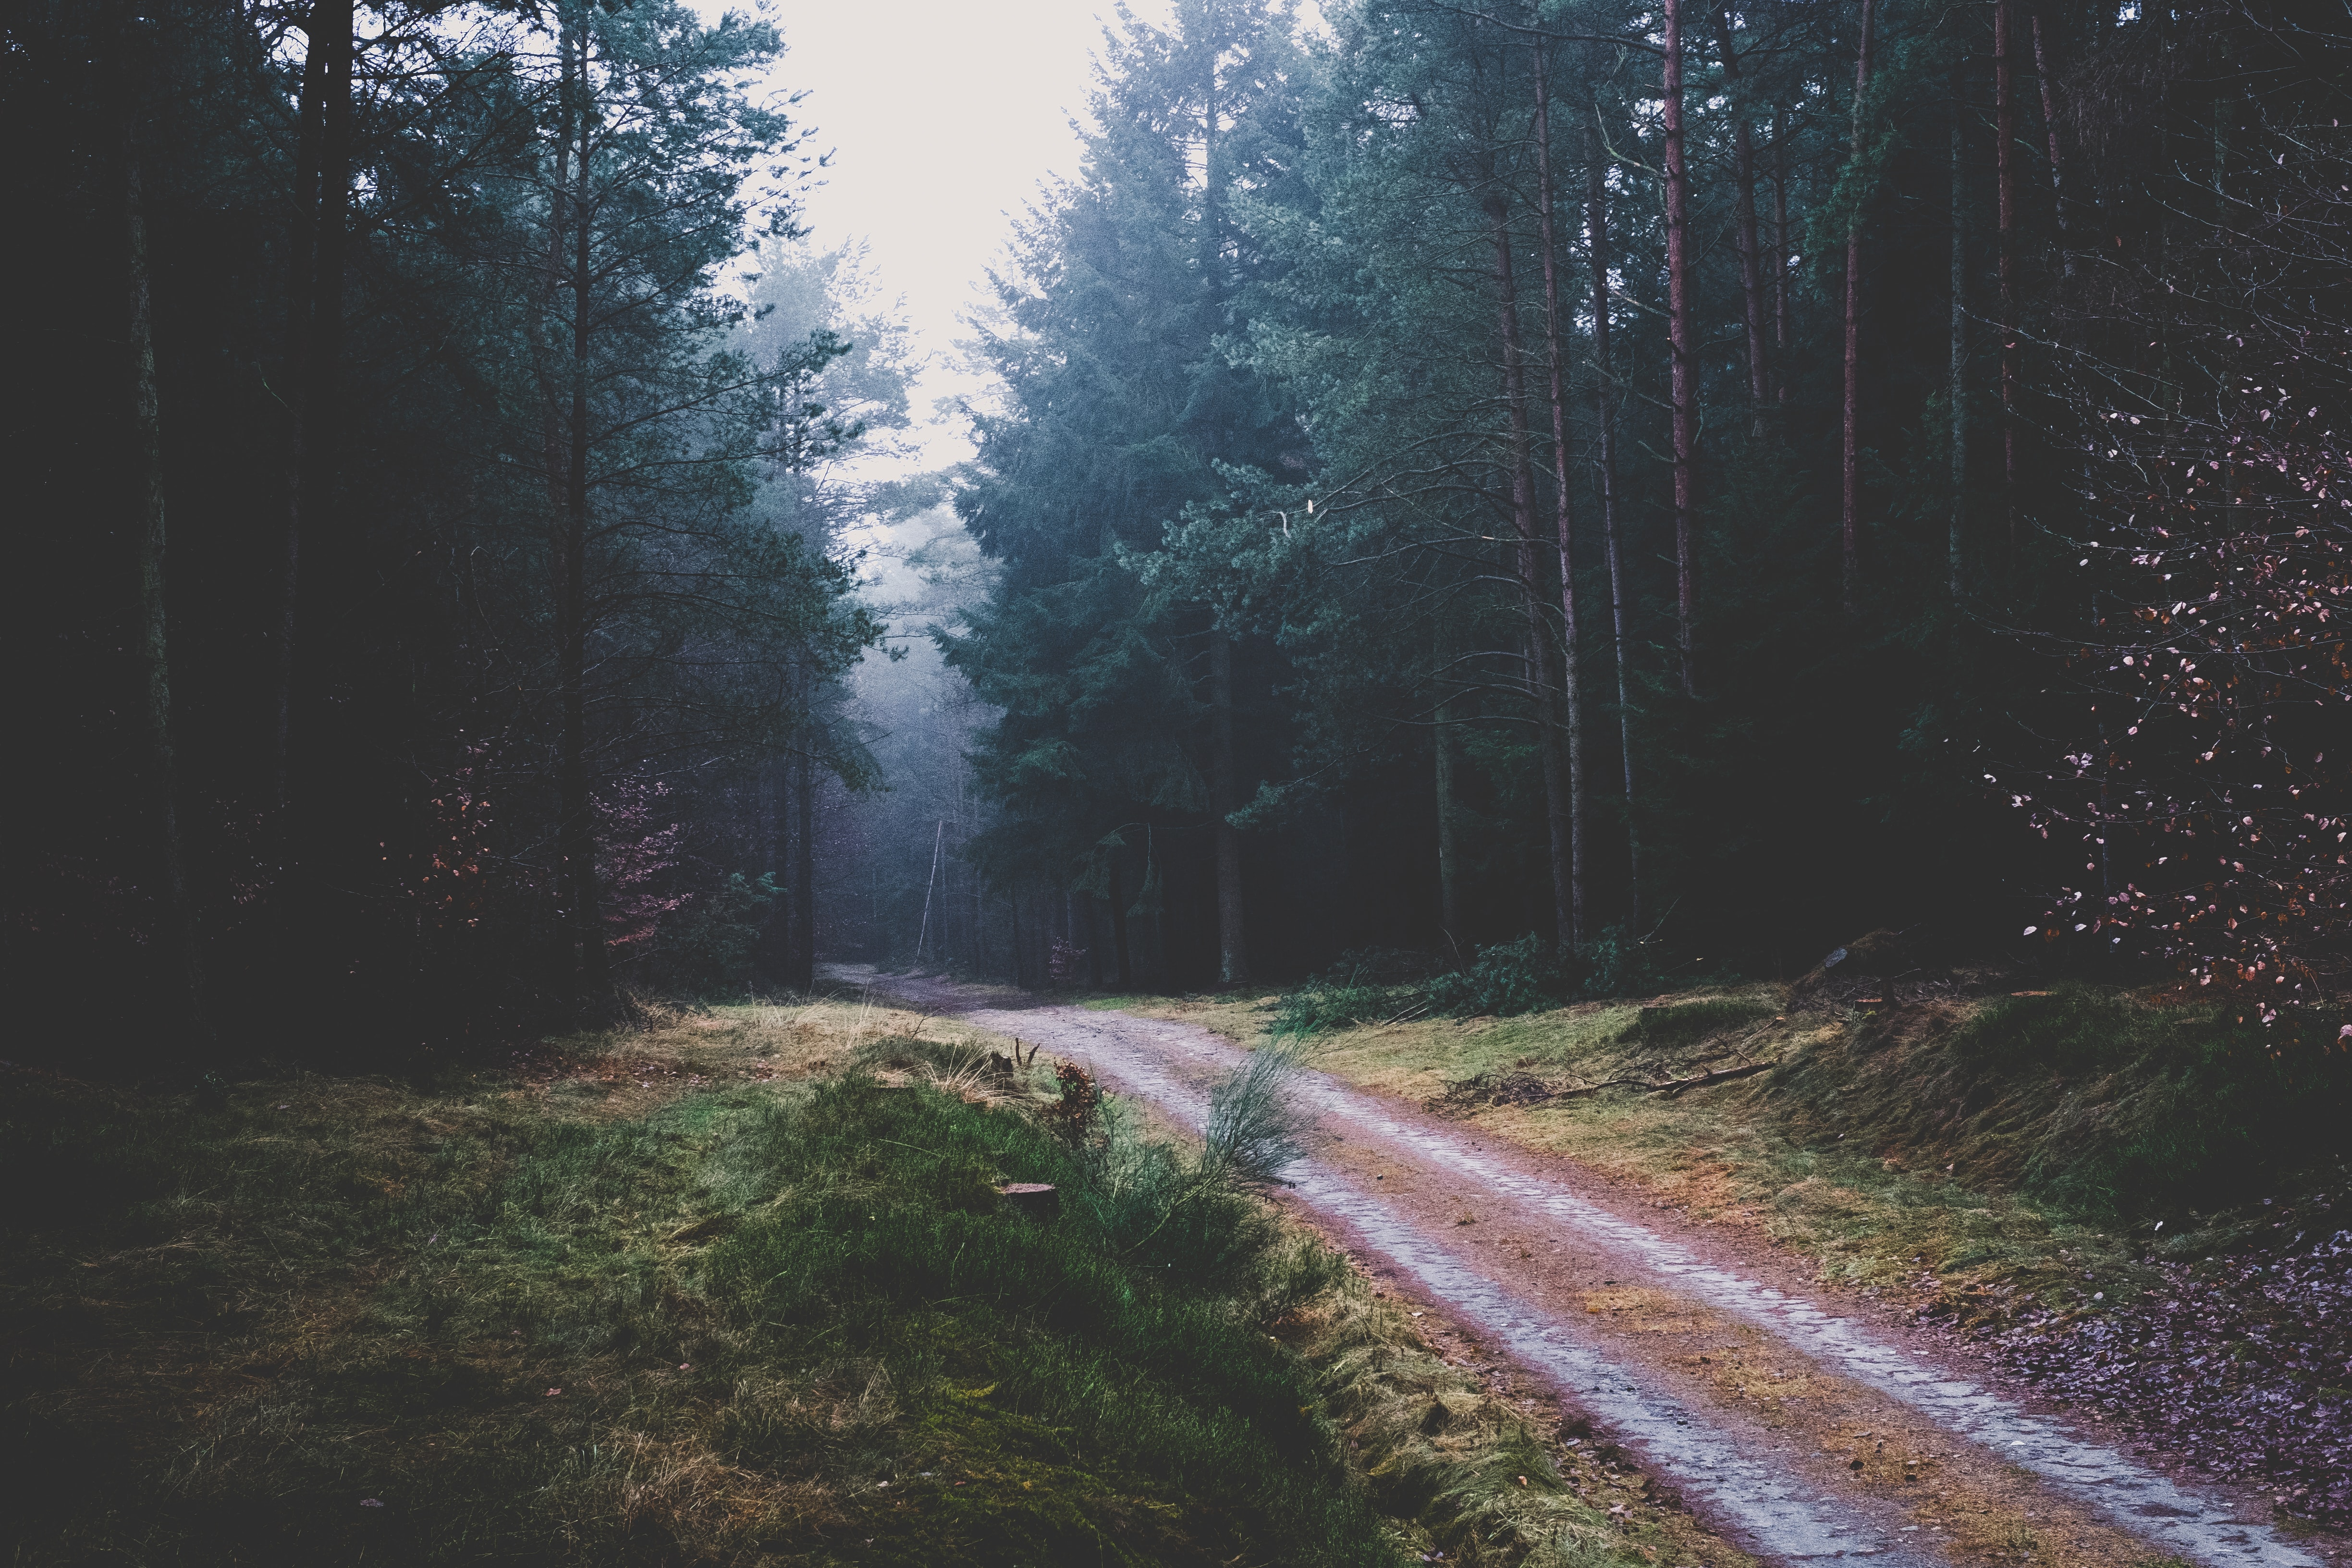 Serene walking path in a wooded forest landscape